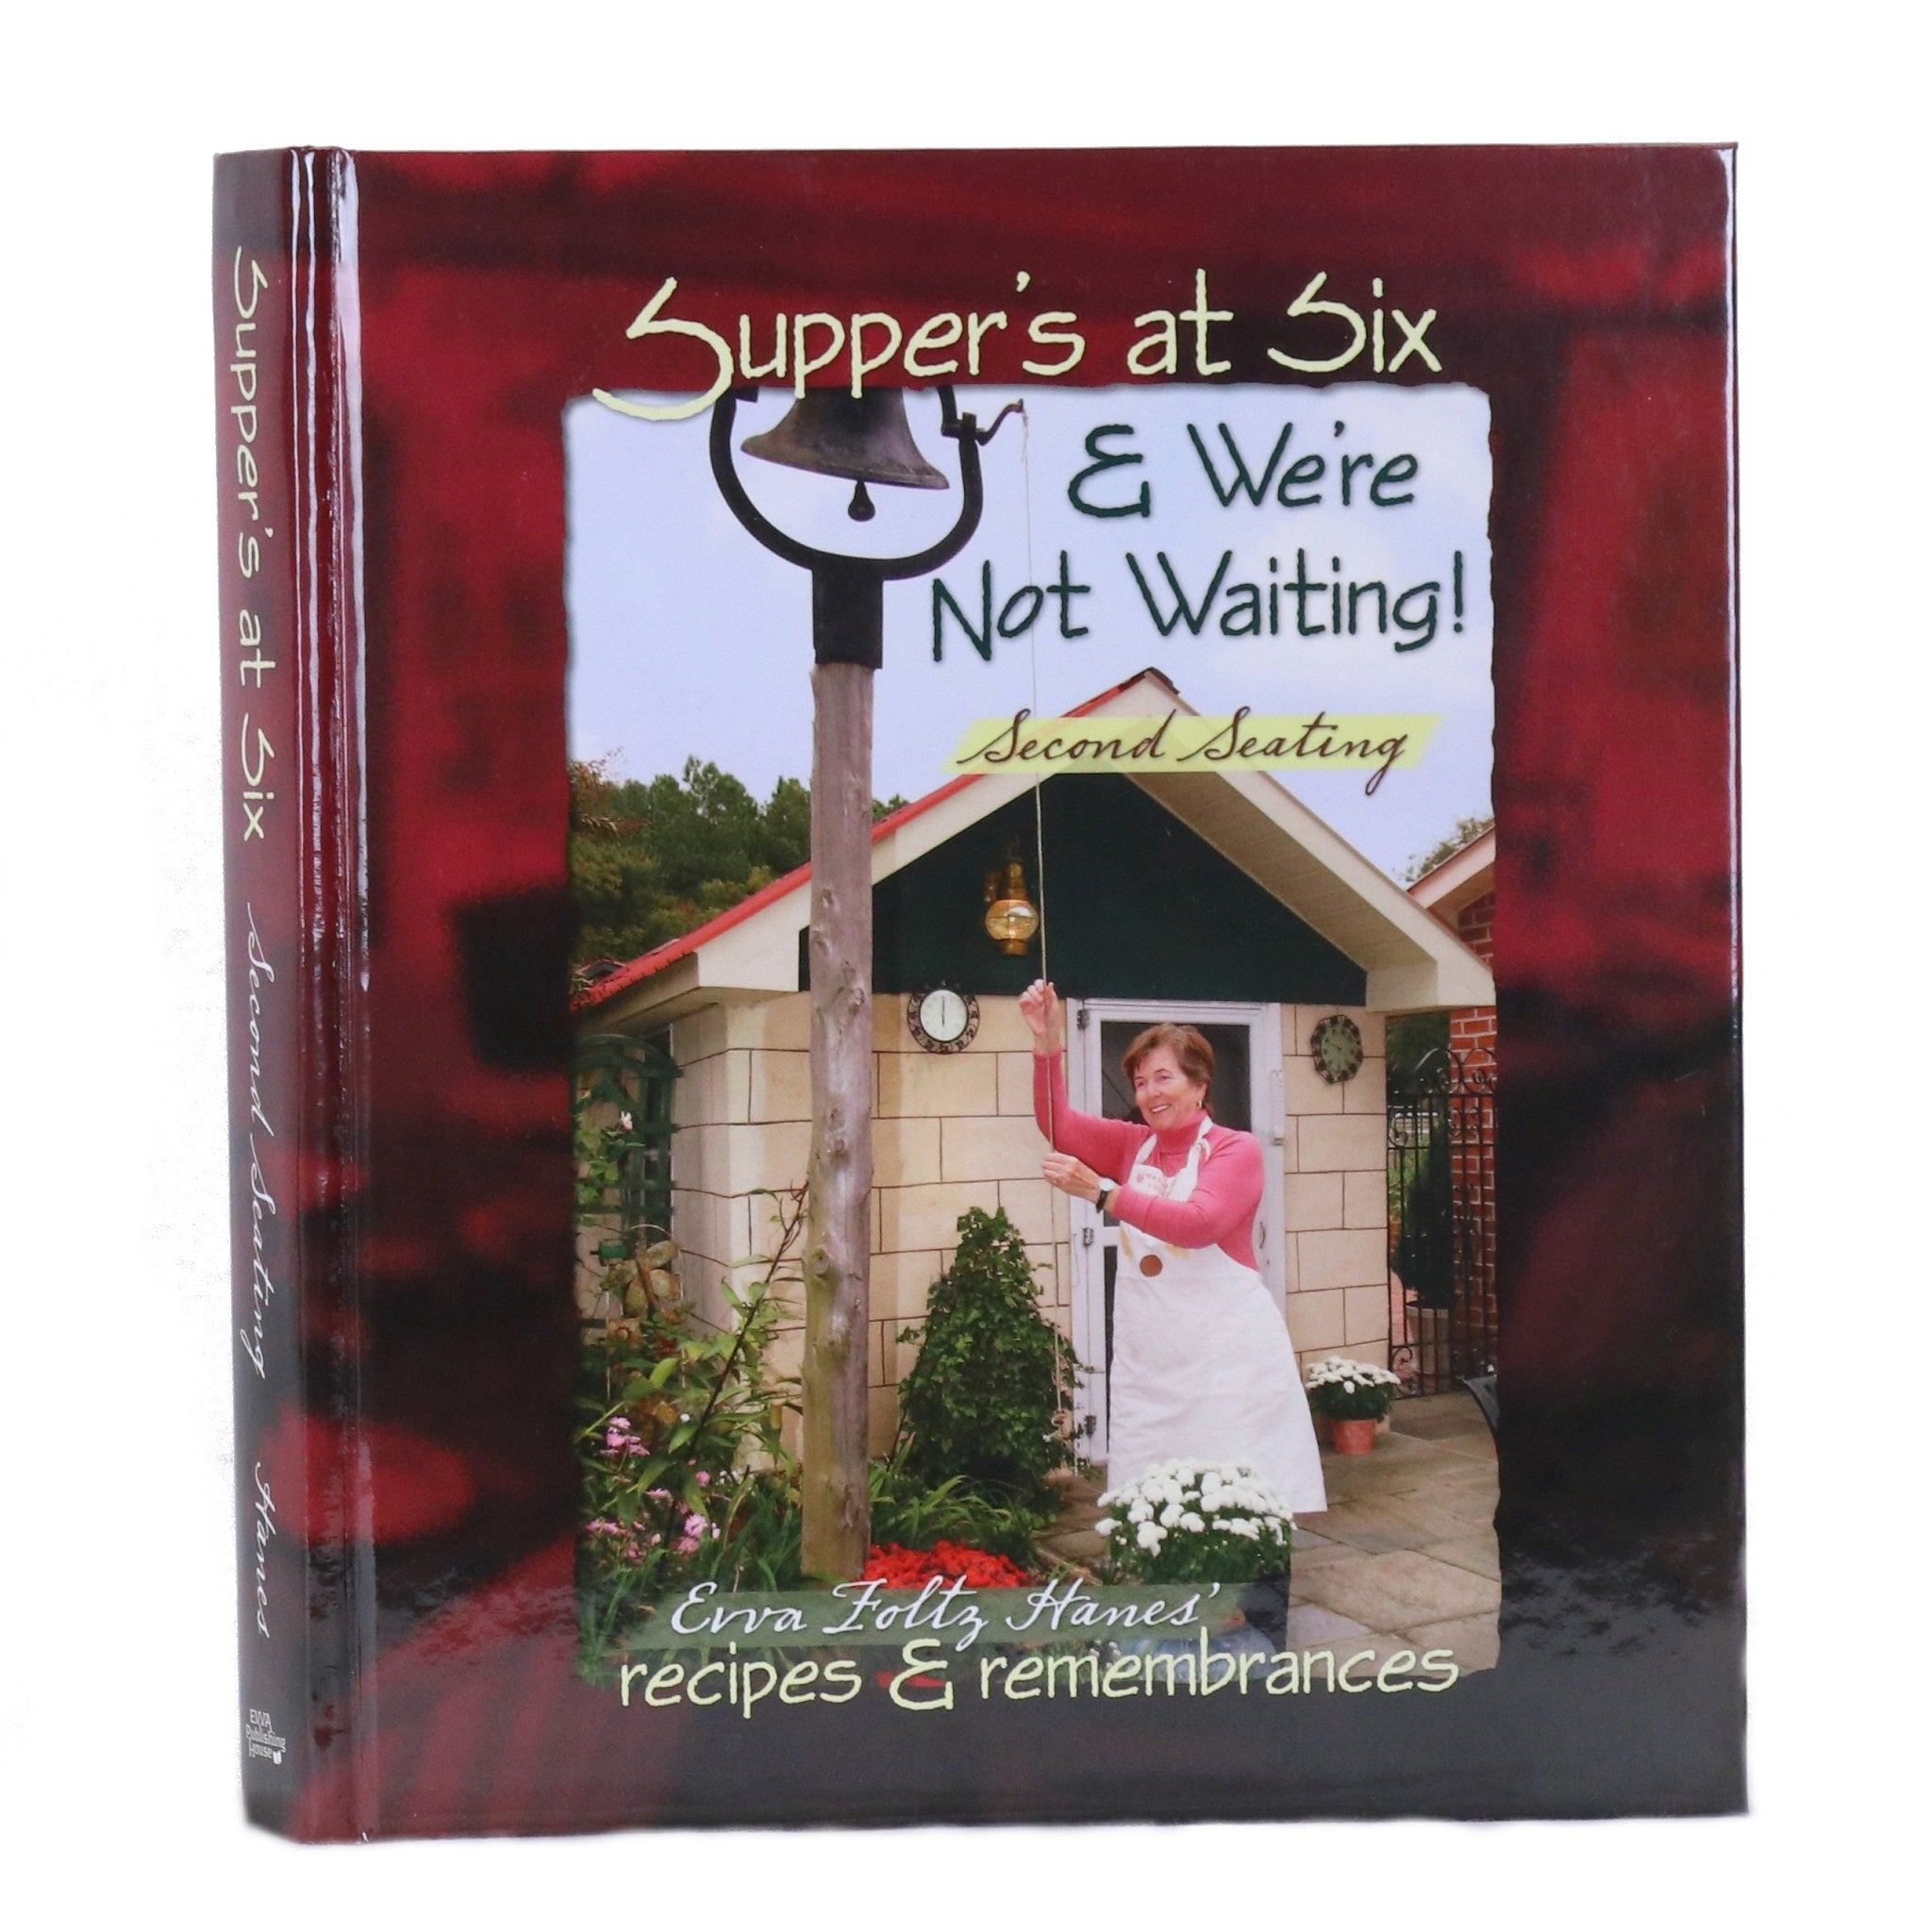 Supper's at Six & We're Not Waiting! Second Seating (Cookbook)